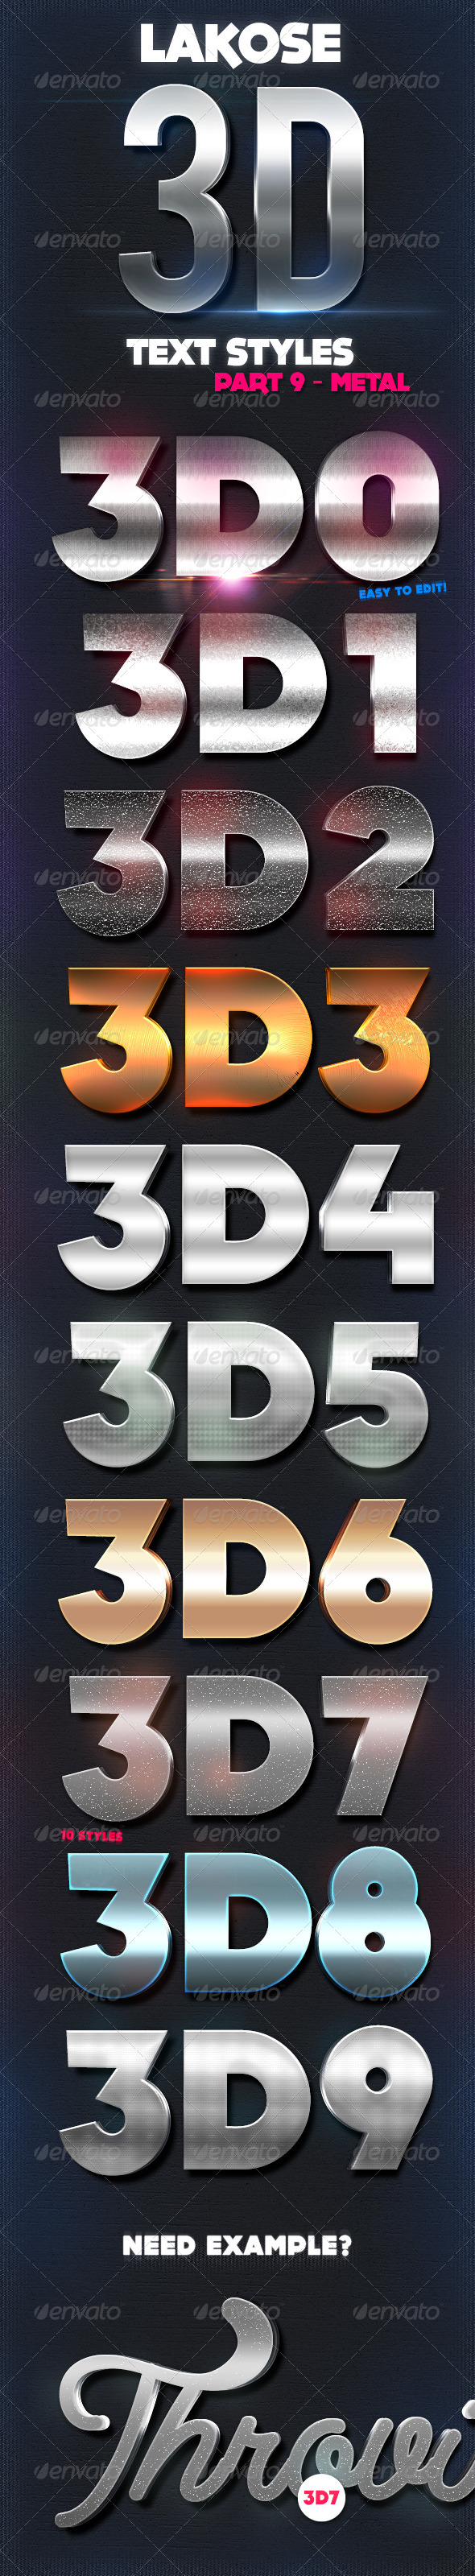 GraphicRiver Lakose 3D Text Styles Part 9 8719606